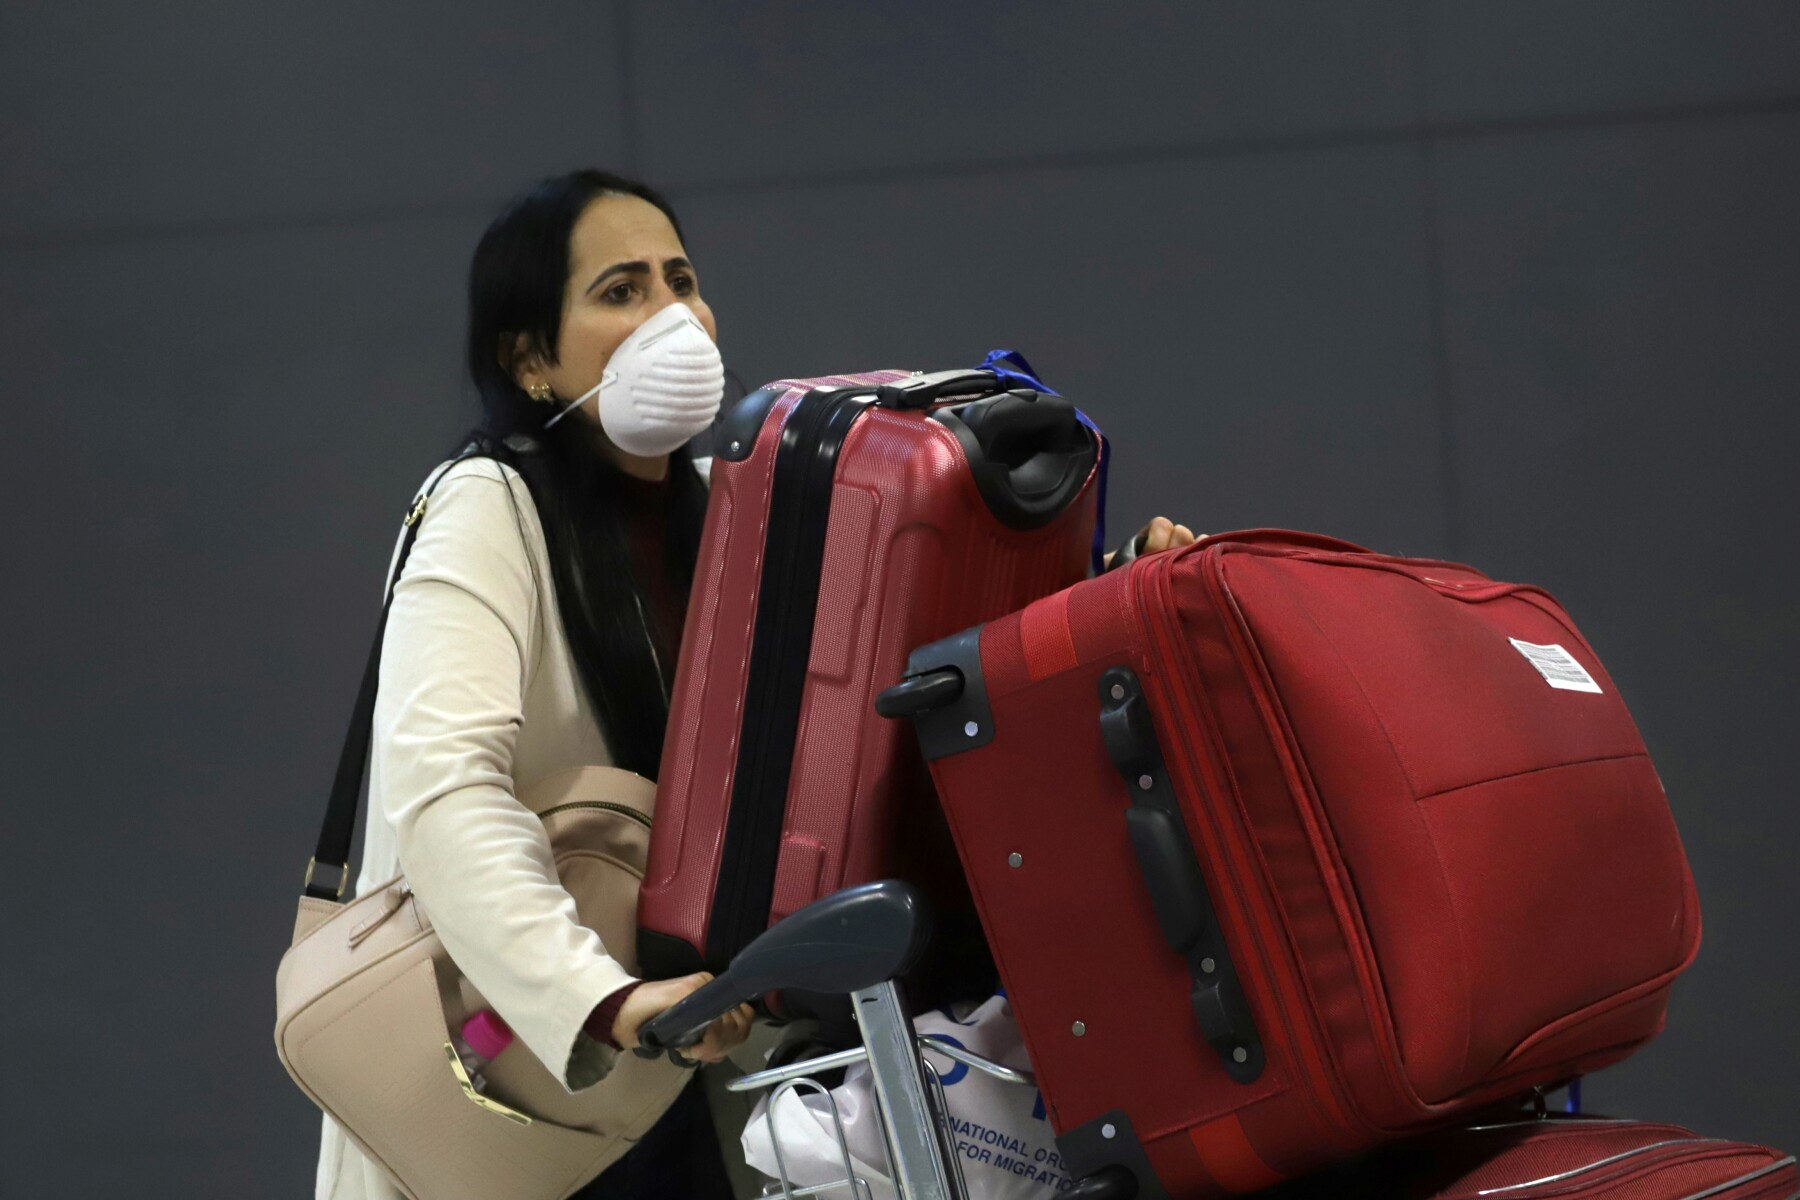 A woman wears a protective face mask at international arrivals area at Guarulhos International Airport in Guarulhos